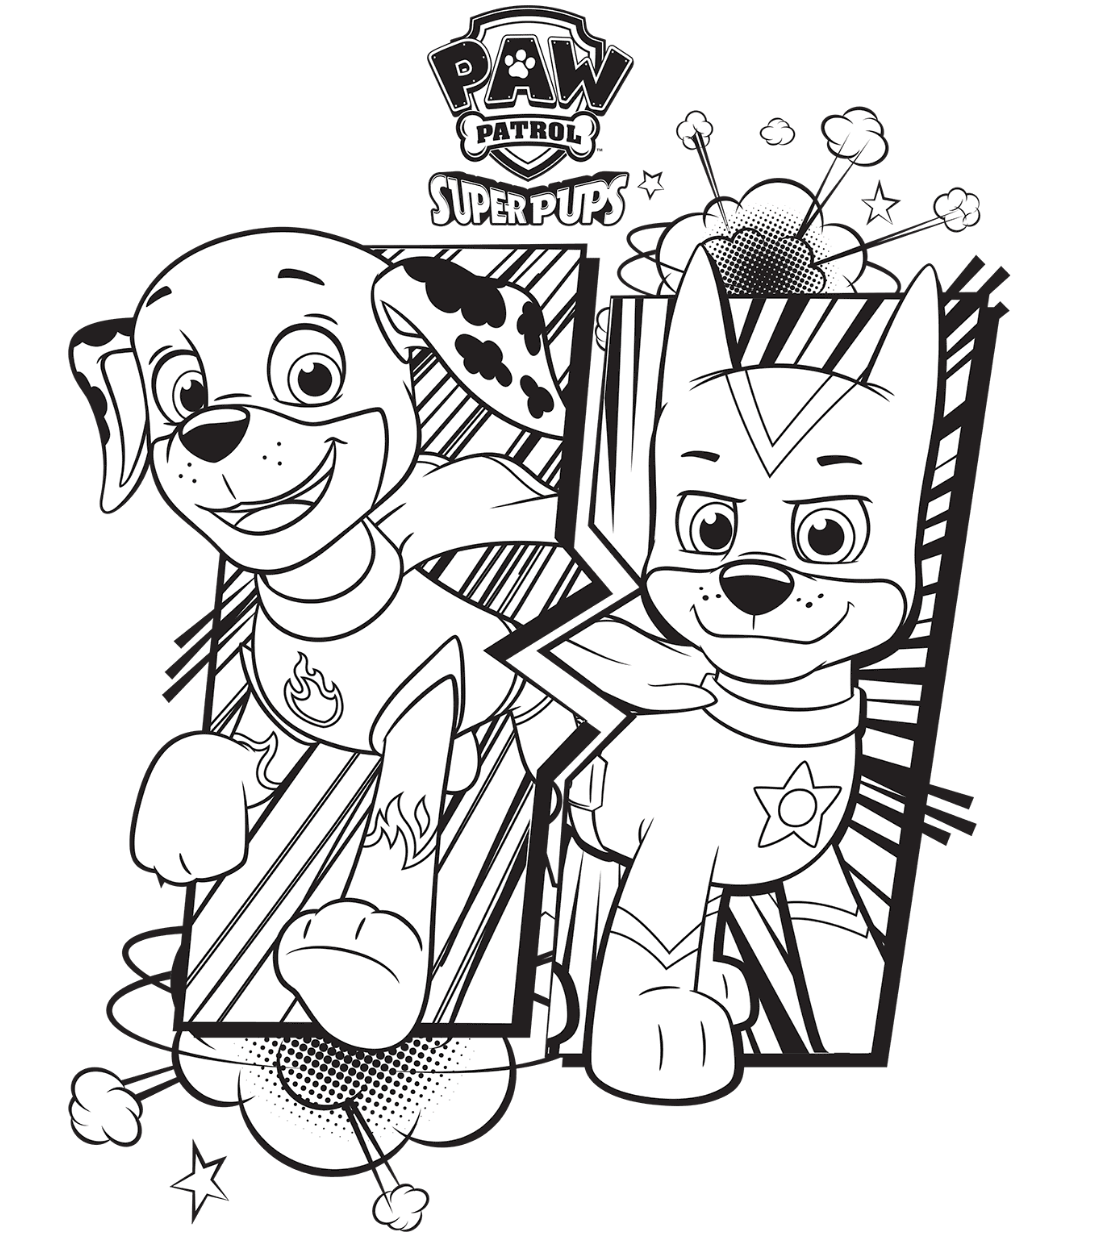 Paw Patrol Super Pups Chase And Marshall Colouring Page Paw Patrol Coloring Paw Patrol Coloring Pages Birthday Coloring Pages